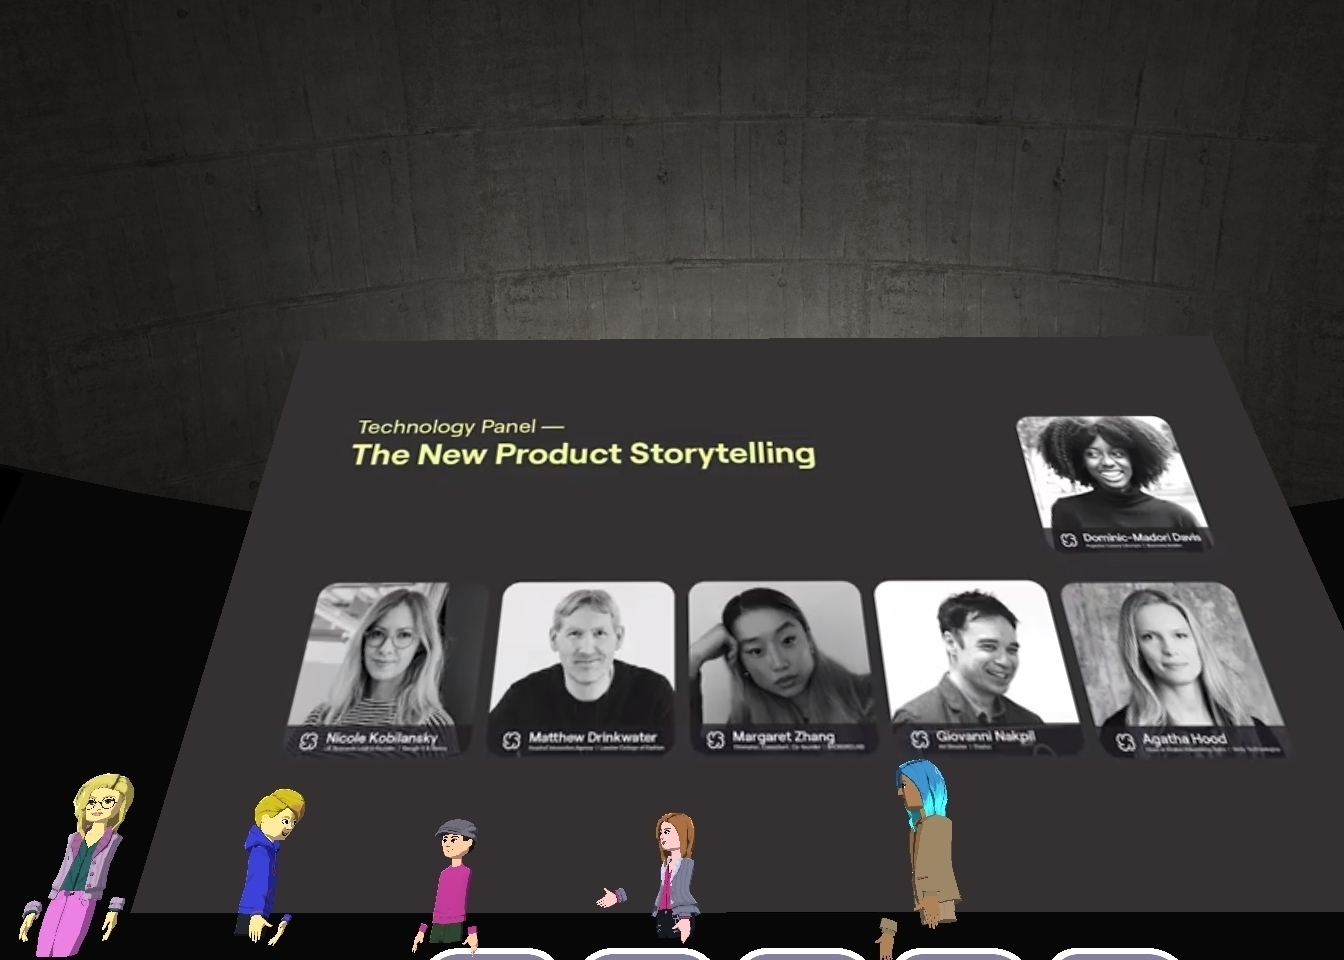 A screenshot shows panelists for a talk at the Circular Fashion Summit. Attendee avatars can be seen.